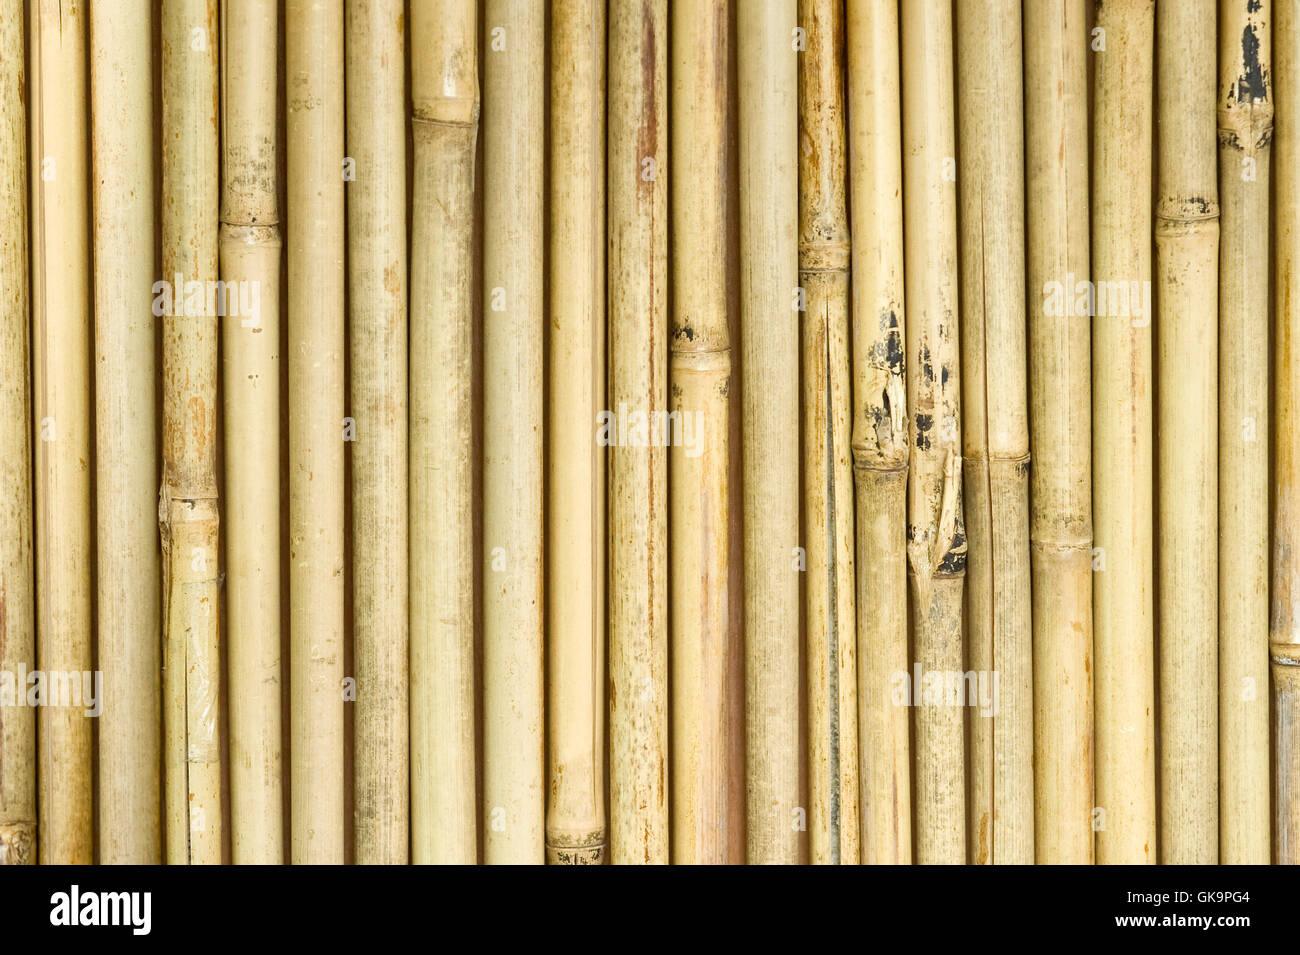 curtain bamboo asian - Stock Image